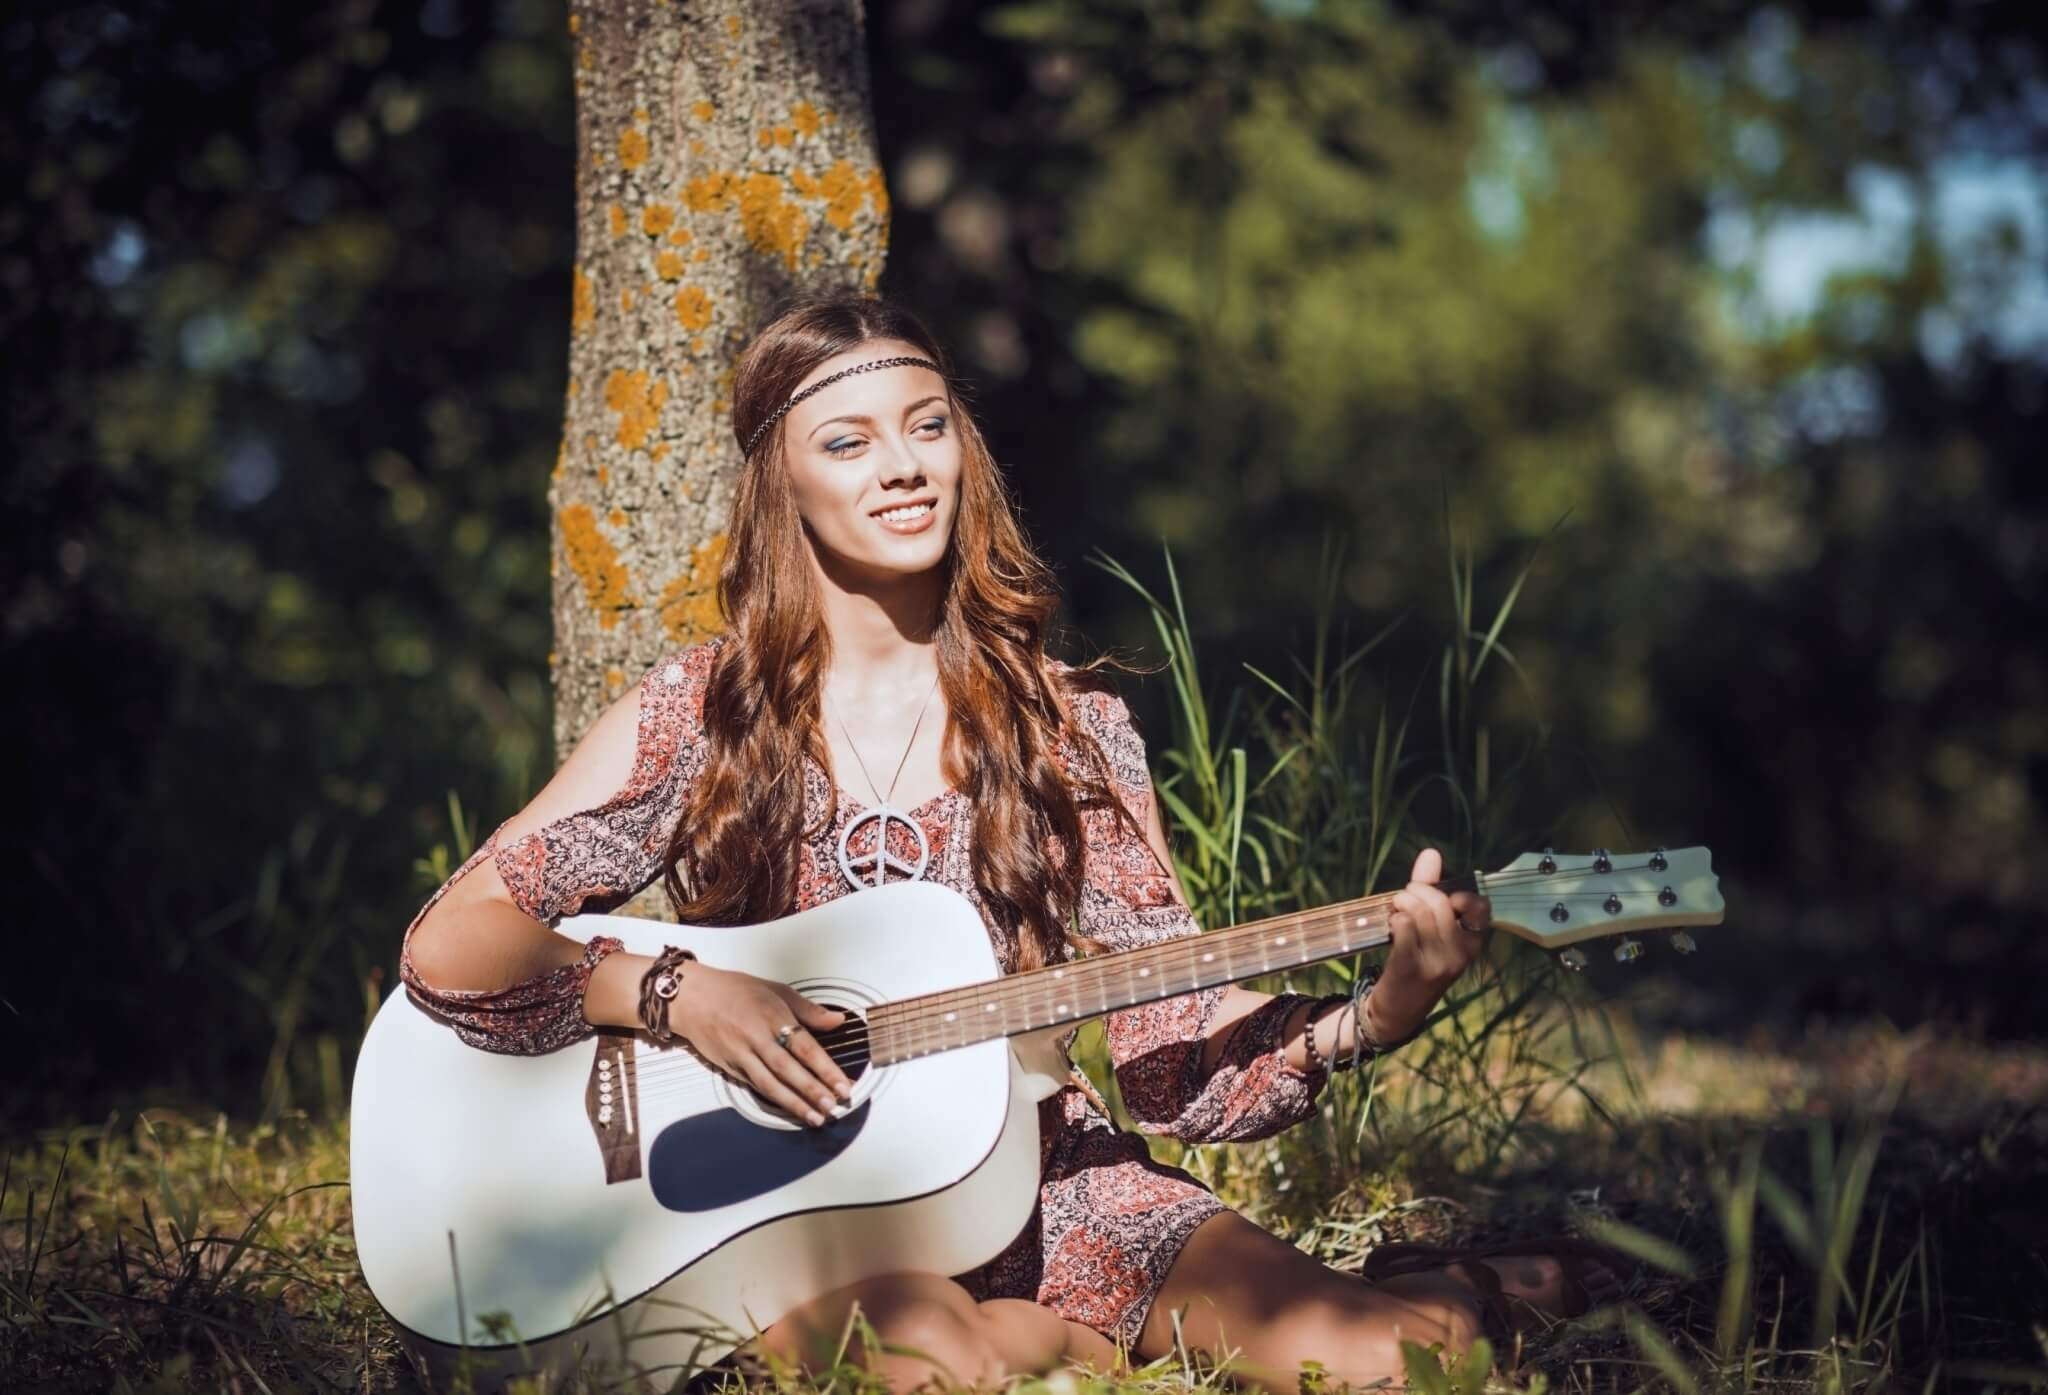 Beautiful-young-hippie-girl-sitting-under-tree-and-playing-guitar-000084782947_Large.jpg.jpeg